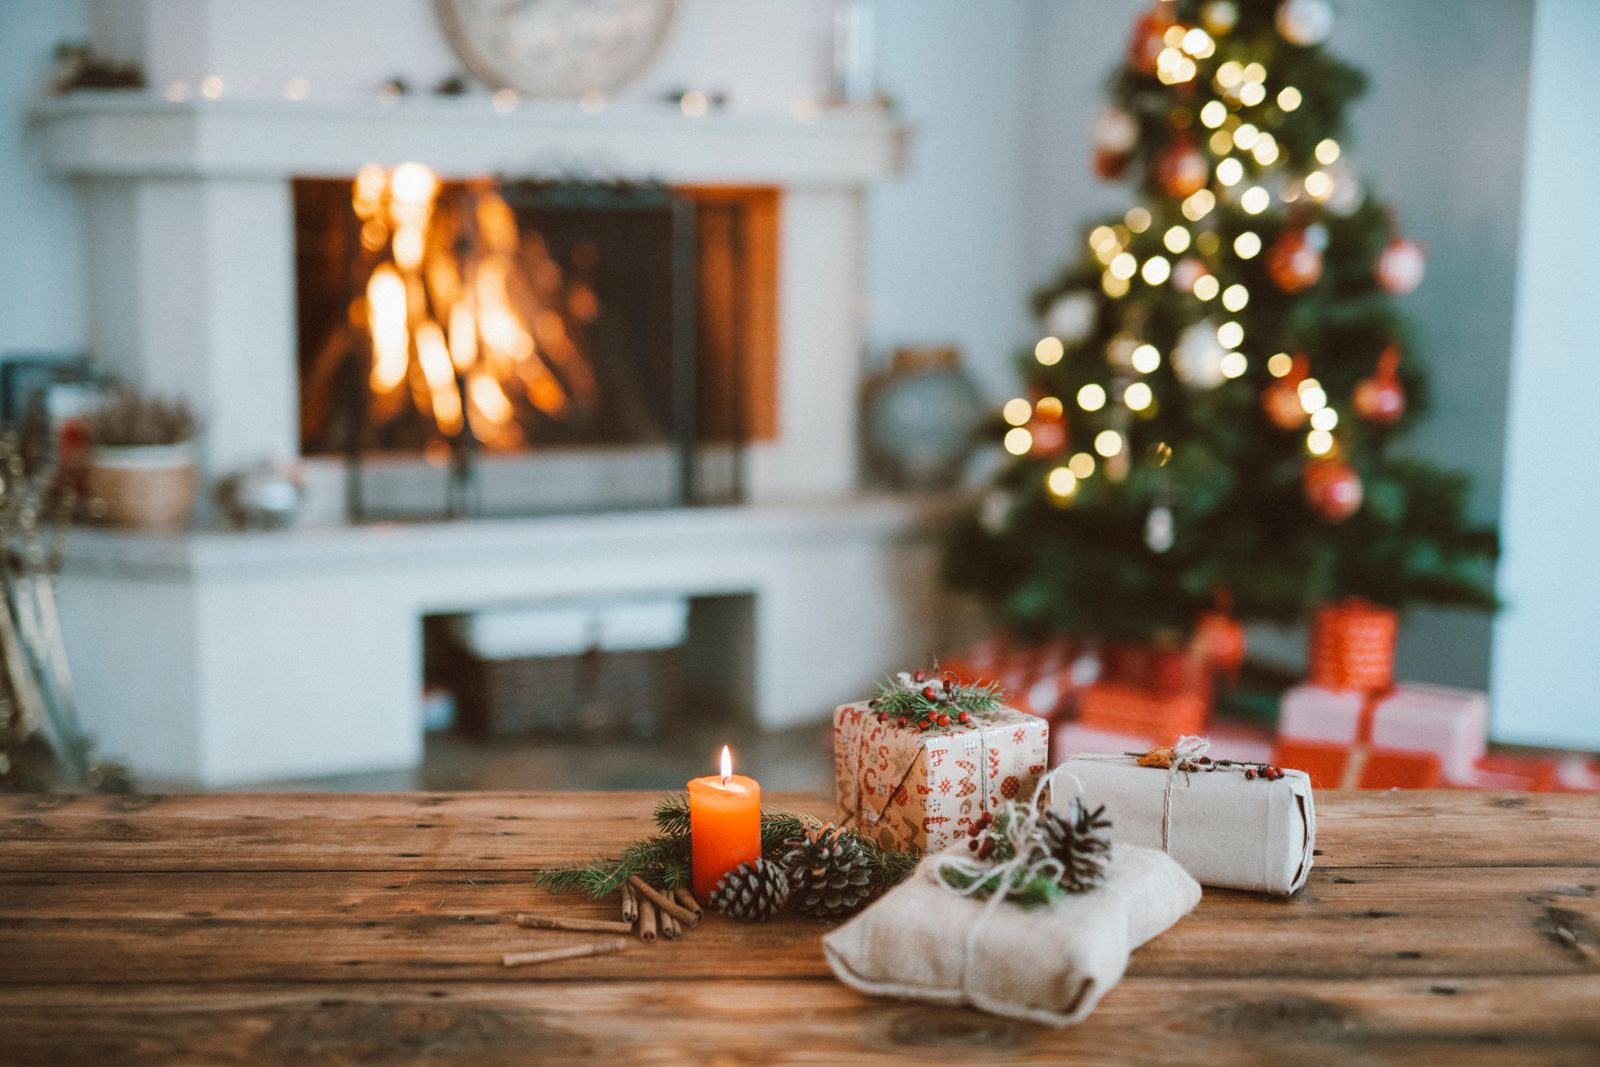 Christmas decorations with a fireplace